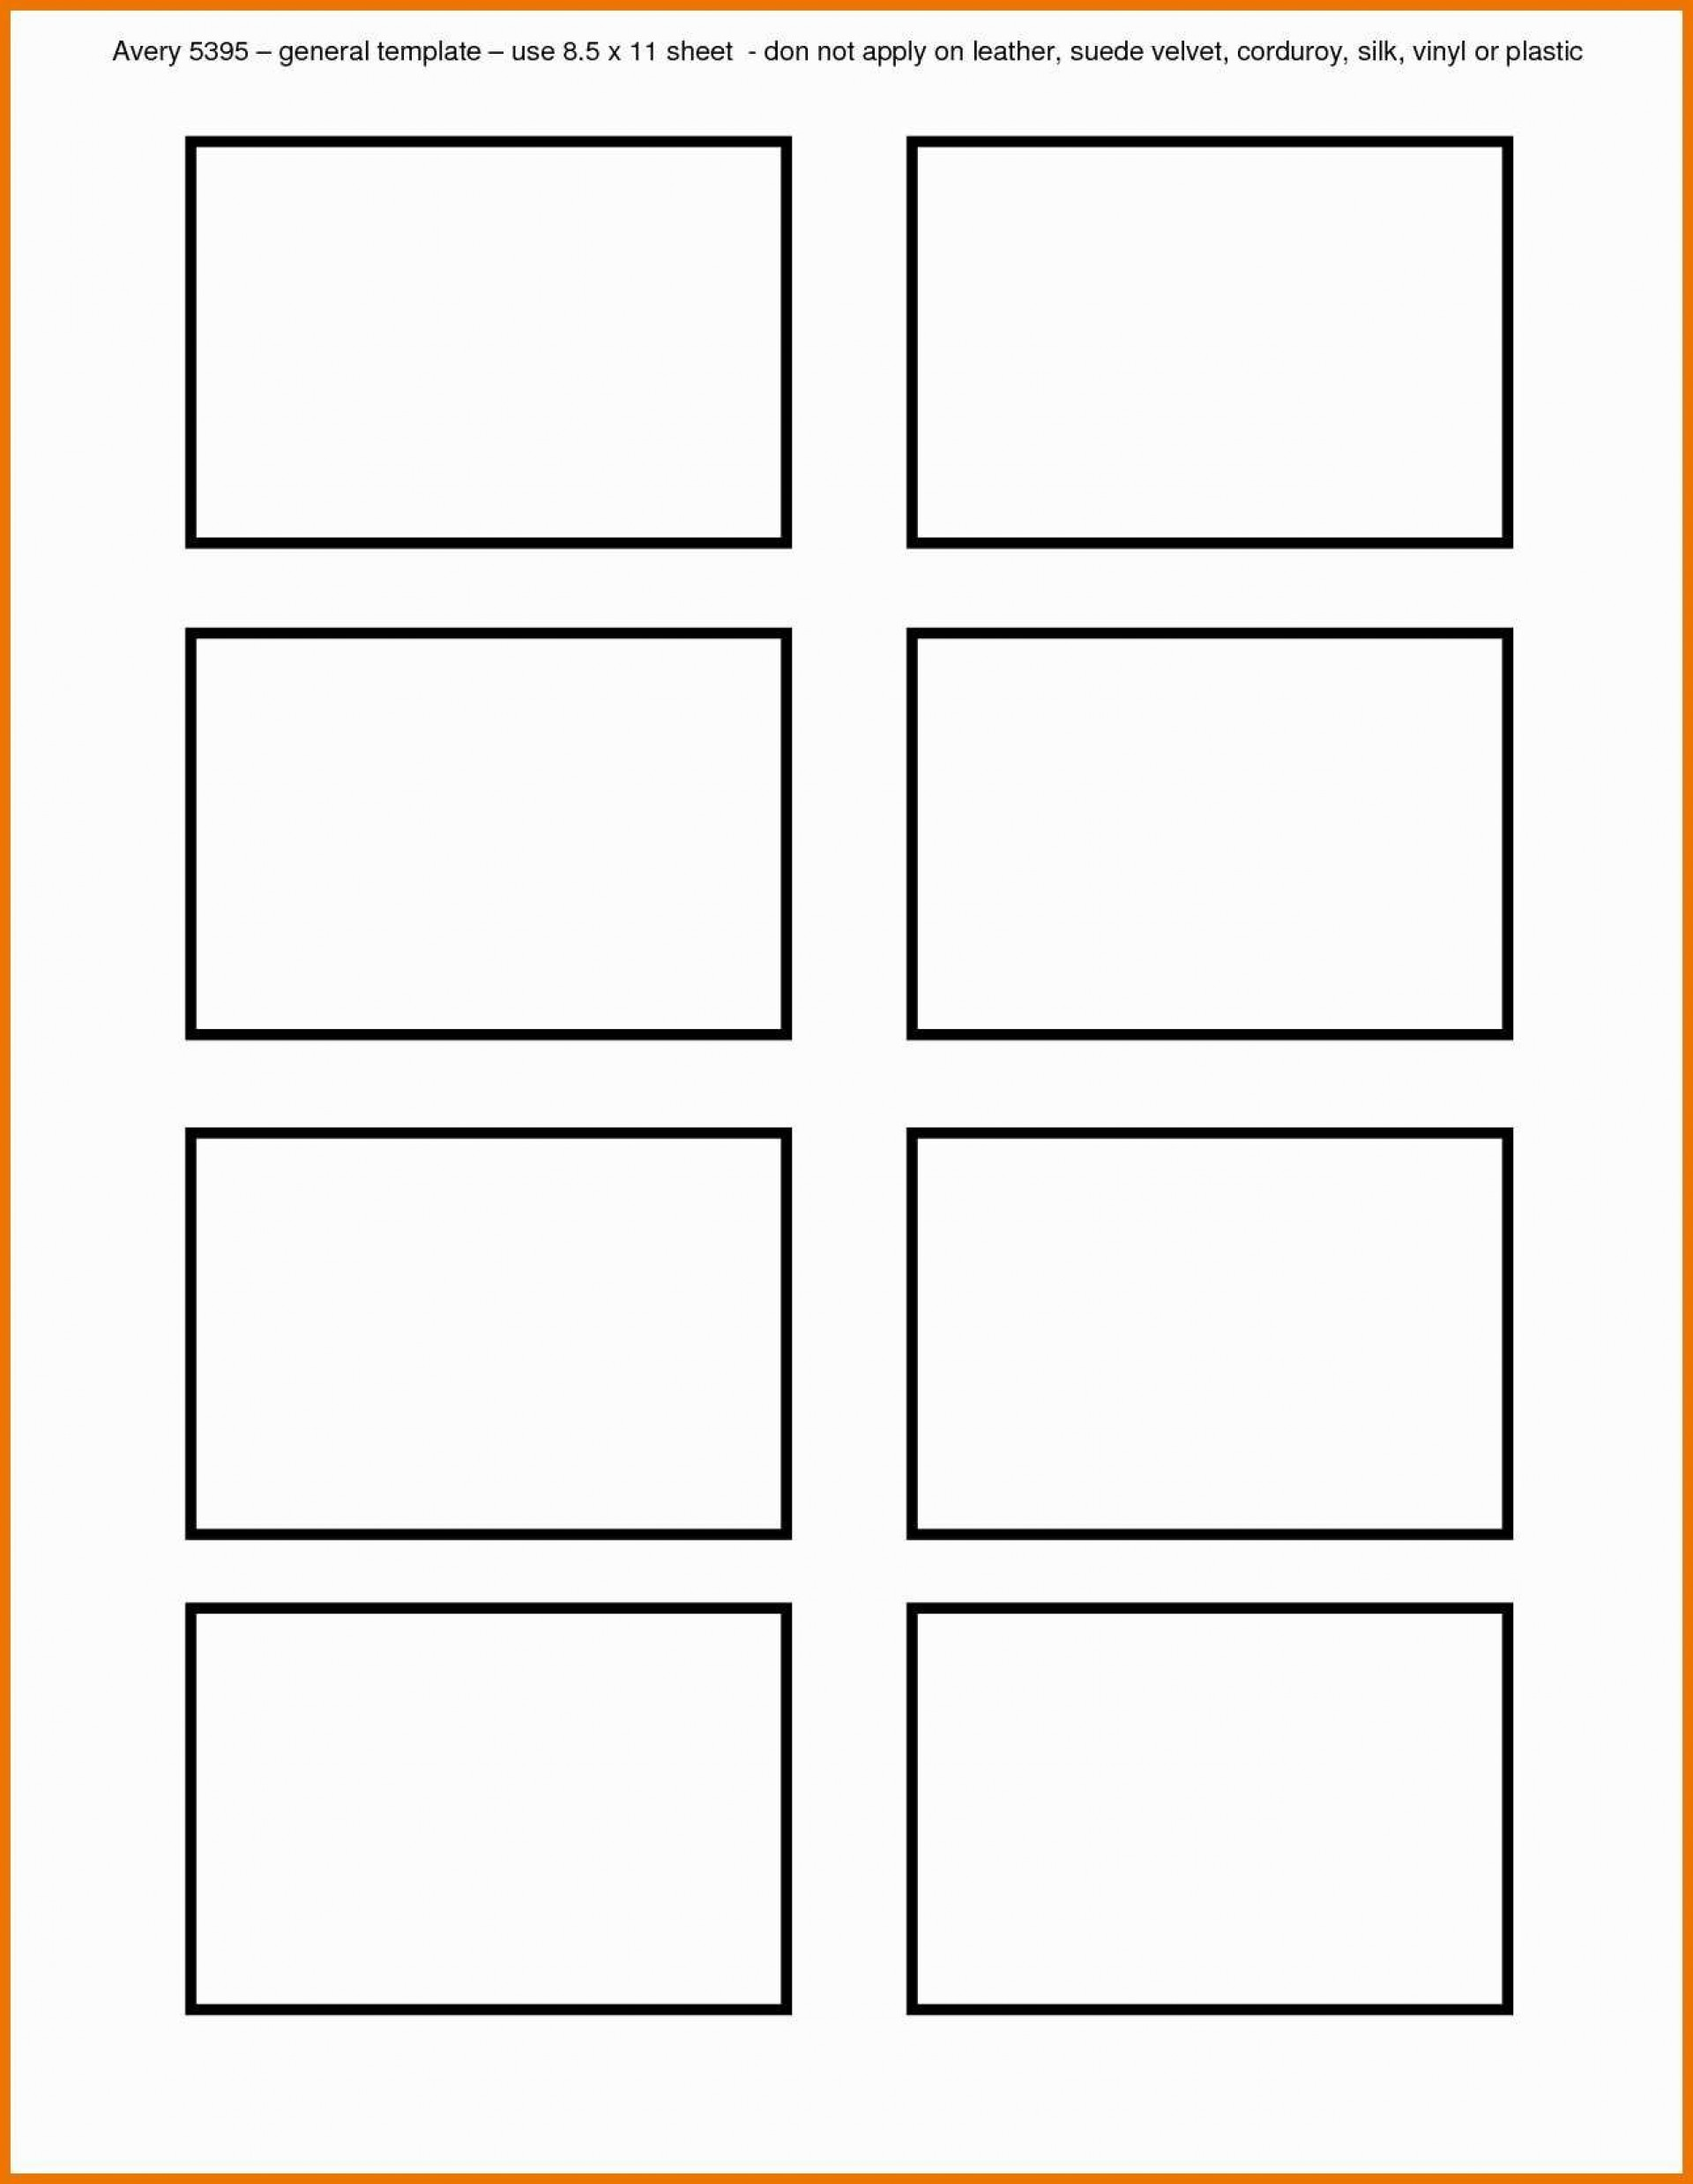 000 Unique Free Printable Card Template Word Concept  Busines Thank You Blank For1920